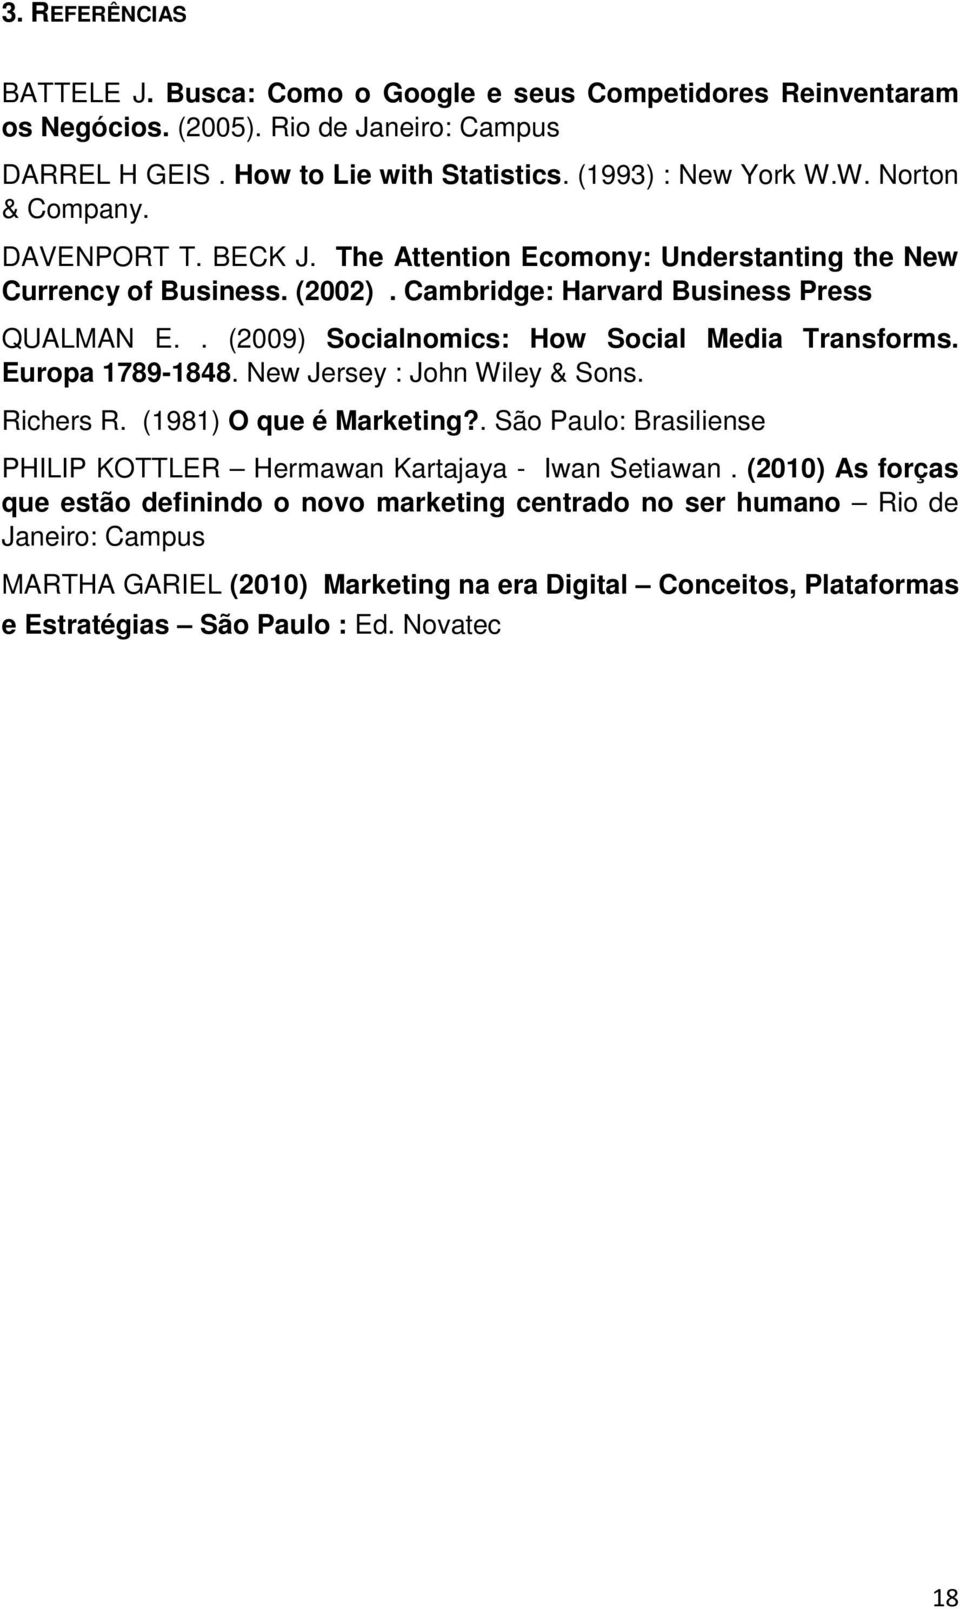 . (2009) Socialnomics: How Social Media Transforms. Europa 1789-1848. New Jersey : John Wiley & Sons. Richers R. (1981) O que é Marketing?